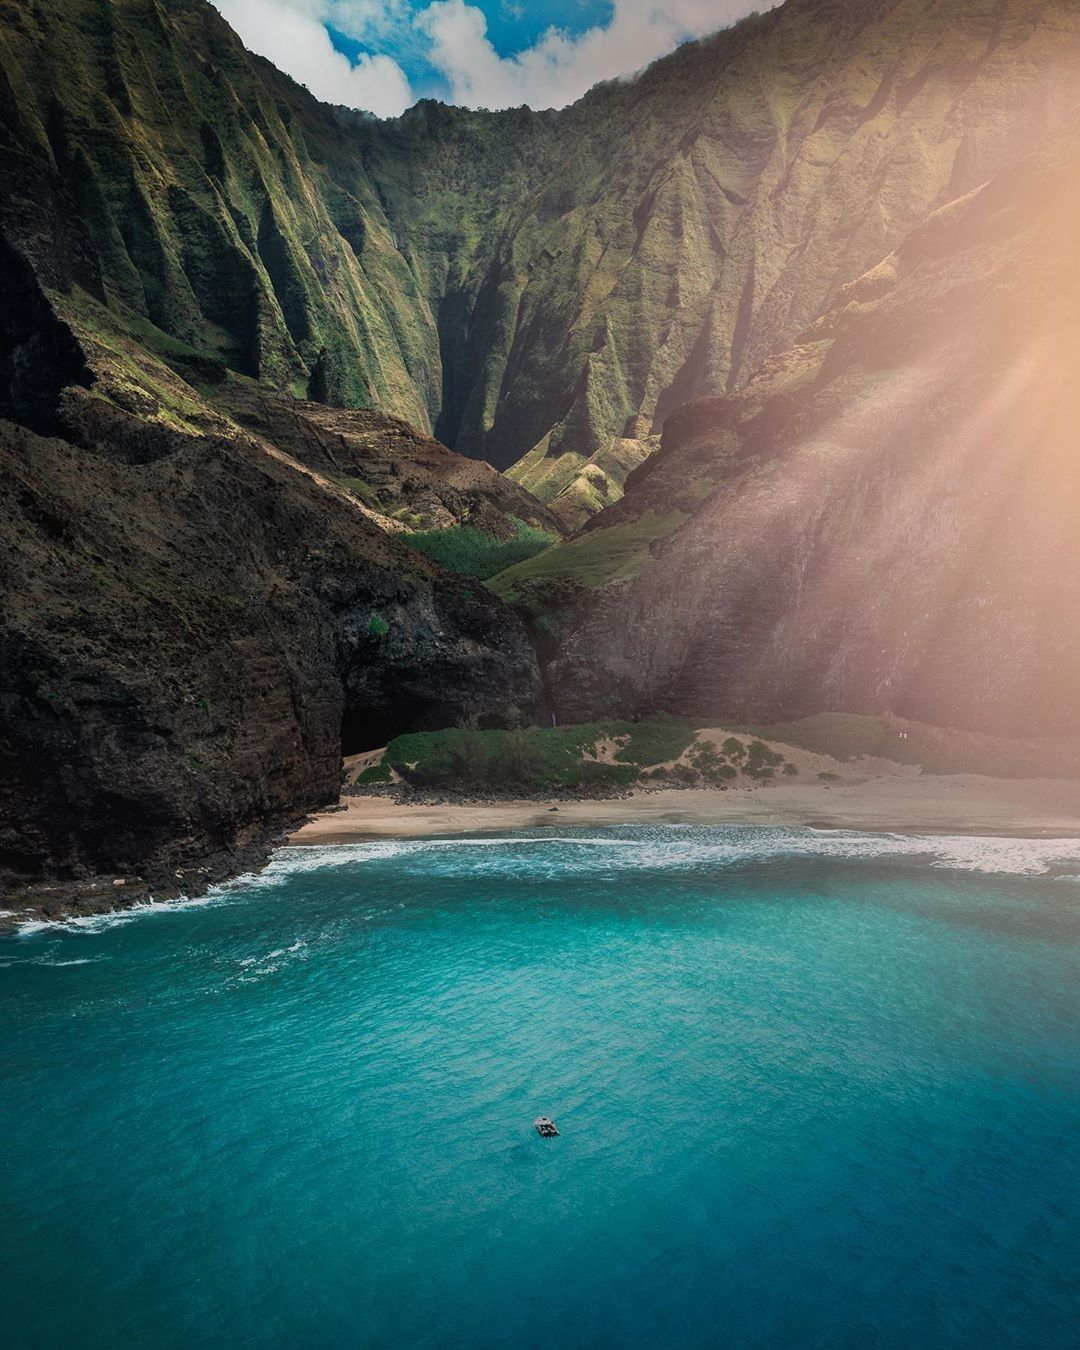 Marvelous Hawaii Marveloushawaii Posted On Instagram That Is Why Movies Are Filmed On These Beaches Of Kauai Wow Hawaiiinside In 2020 Kauai Places To Go Hawaii